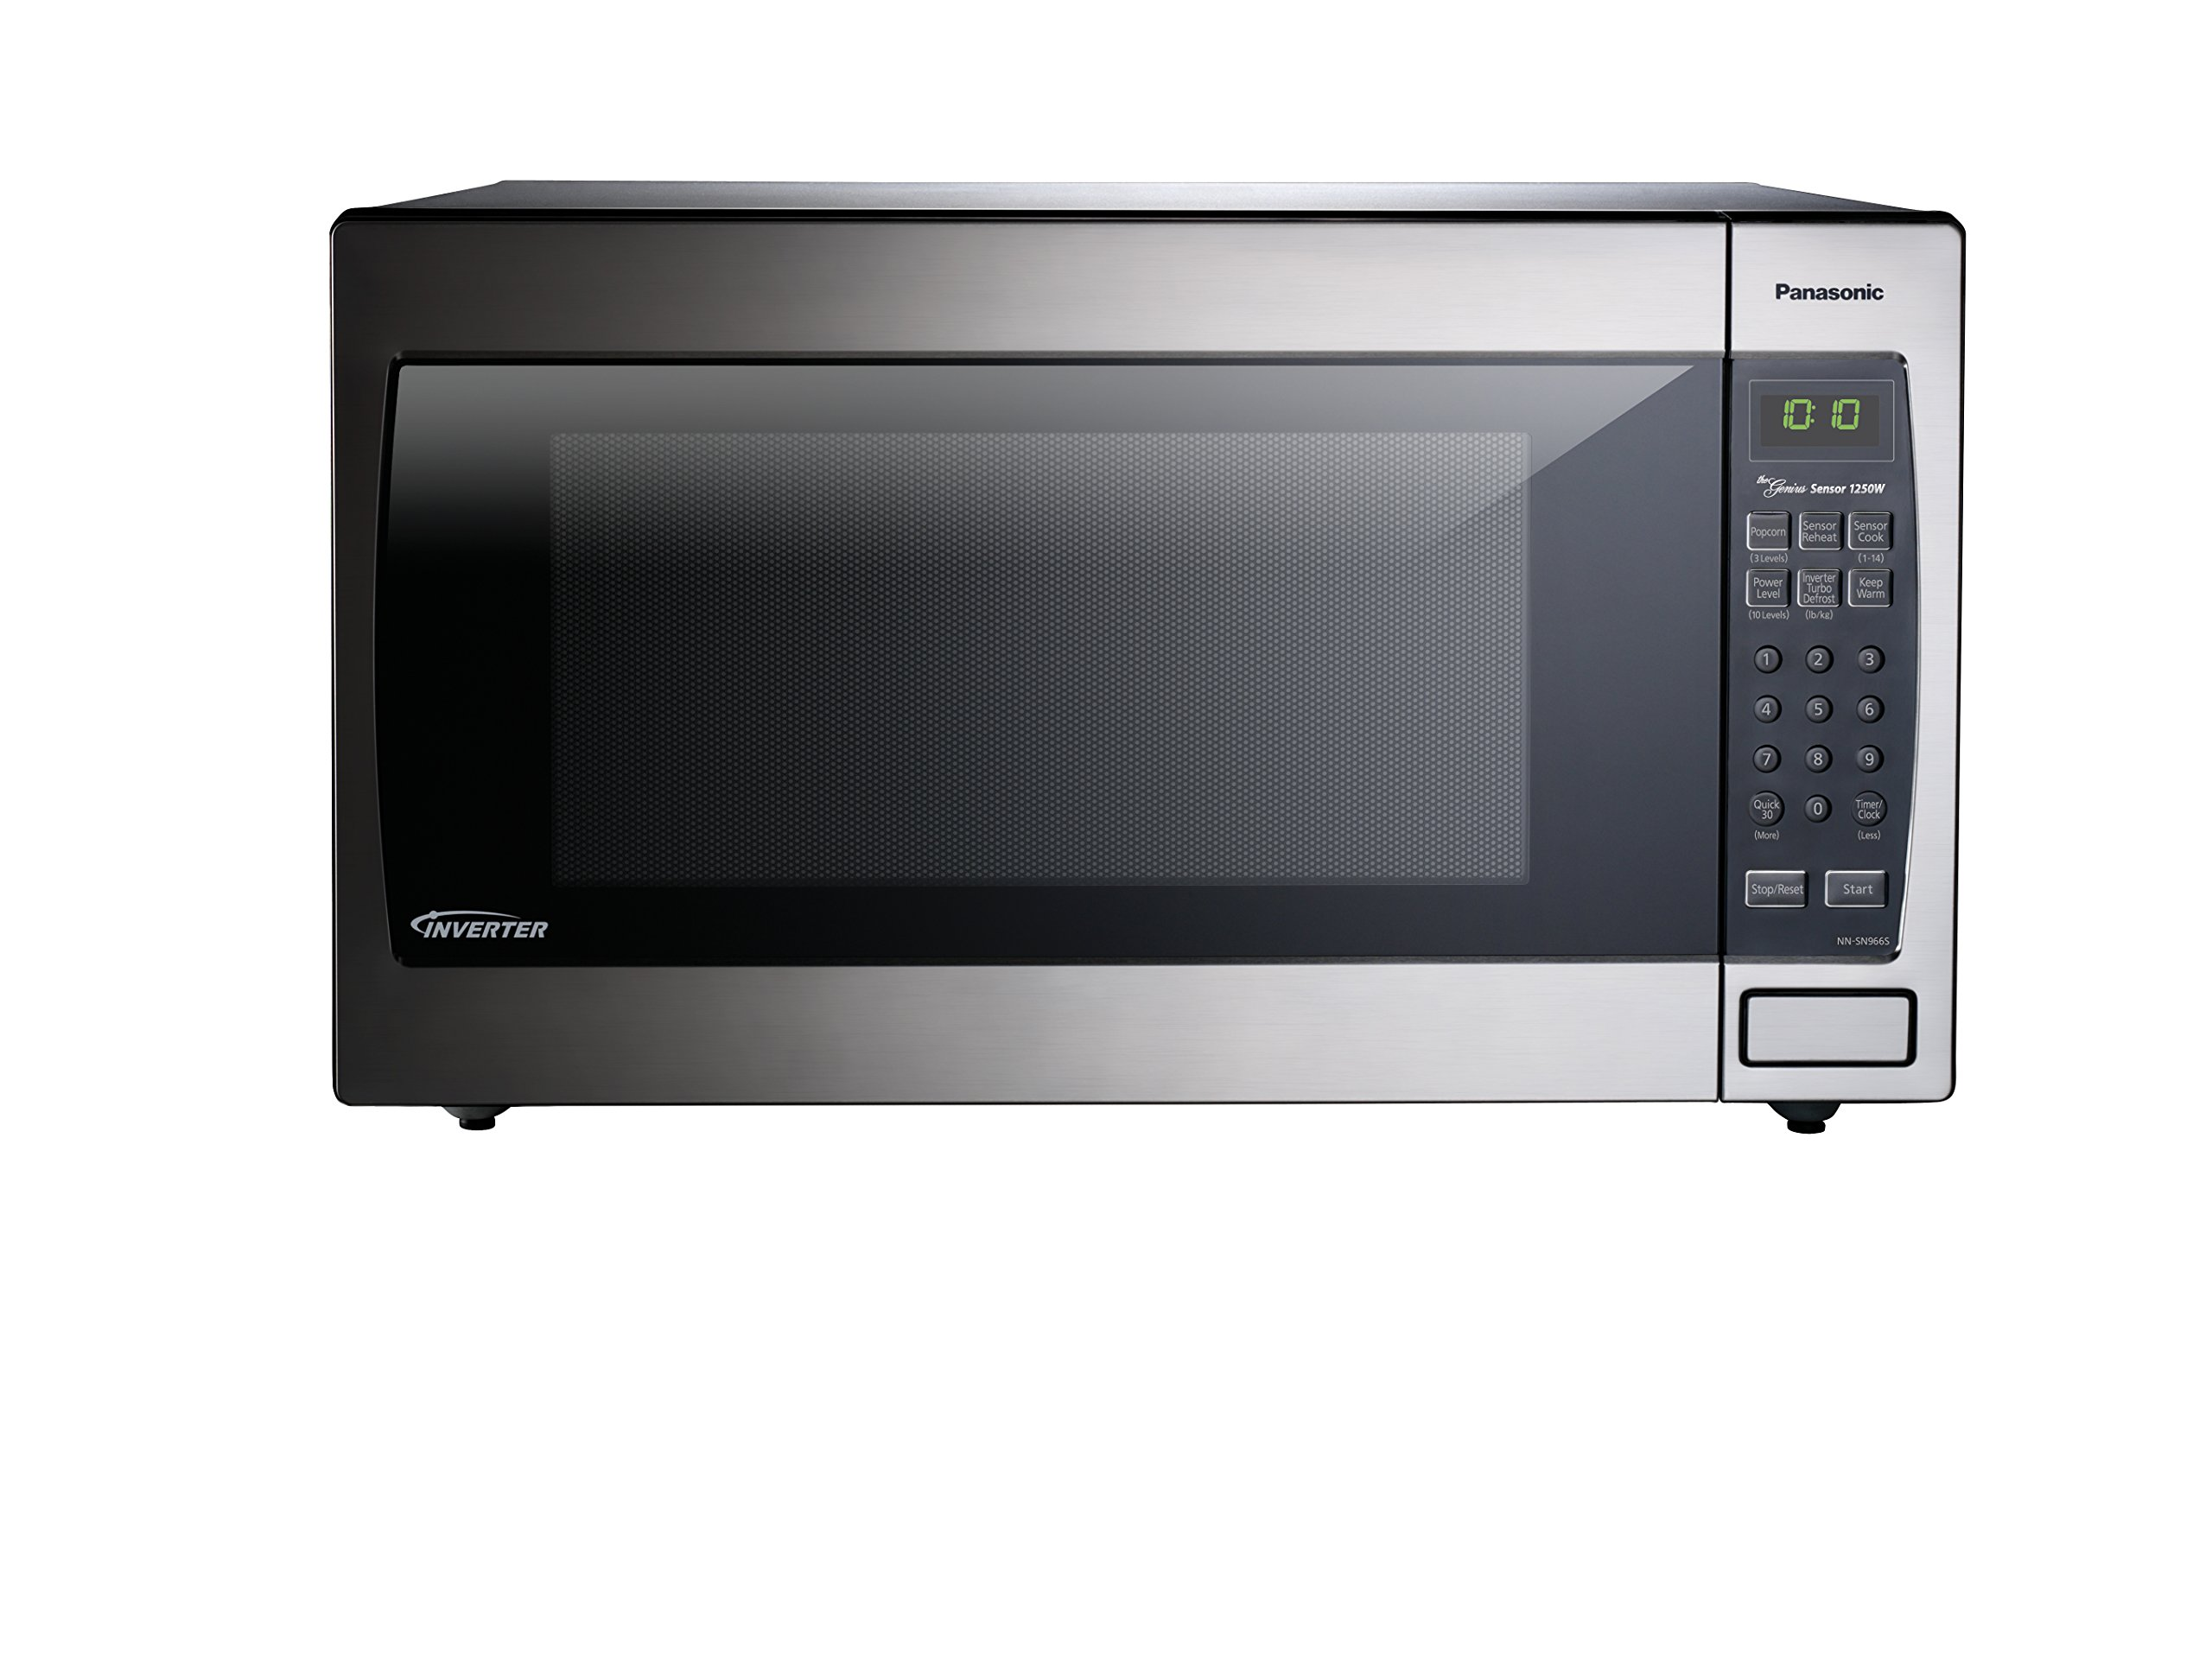 Panasonic NN-SN966S Countertop/Built-In Microwave with Inverter Technology, 2.2  cu. ft. , Stainless by Panasonic